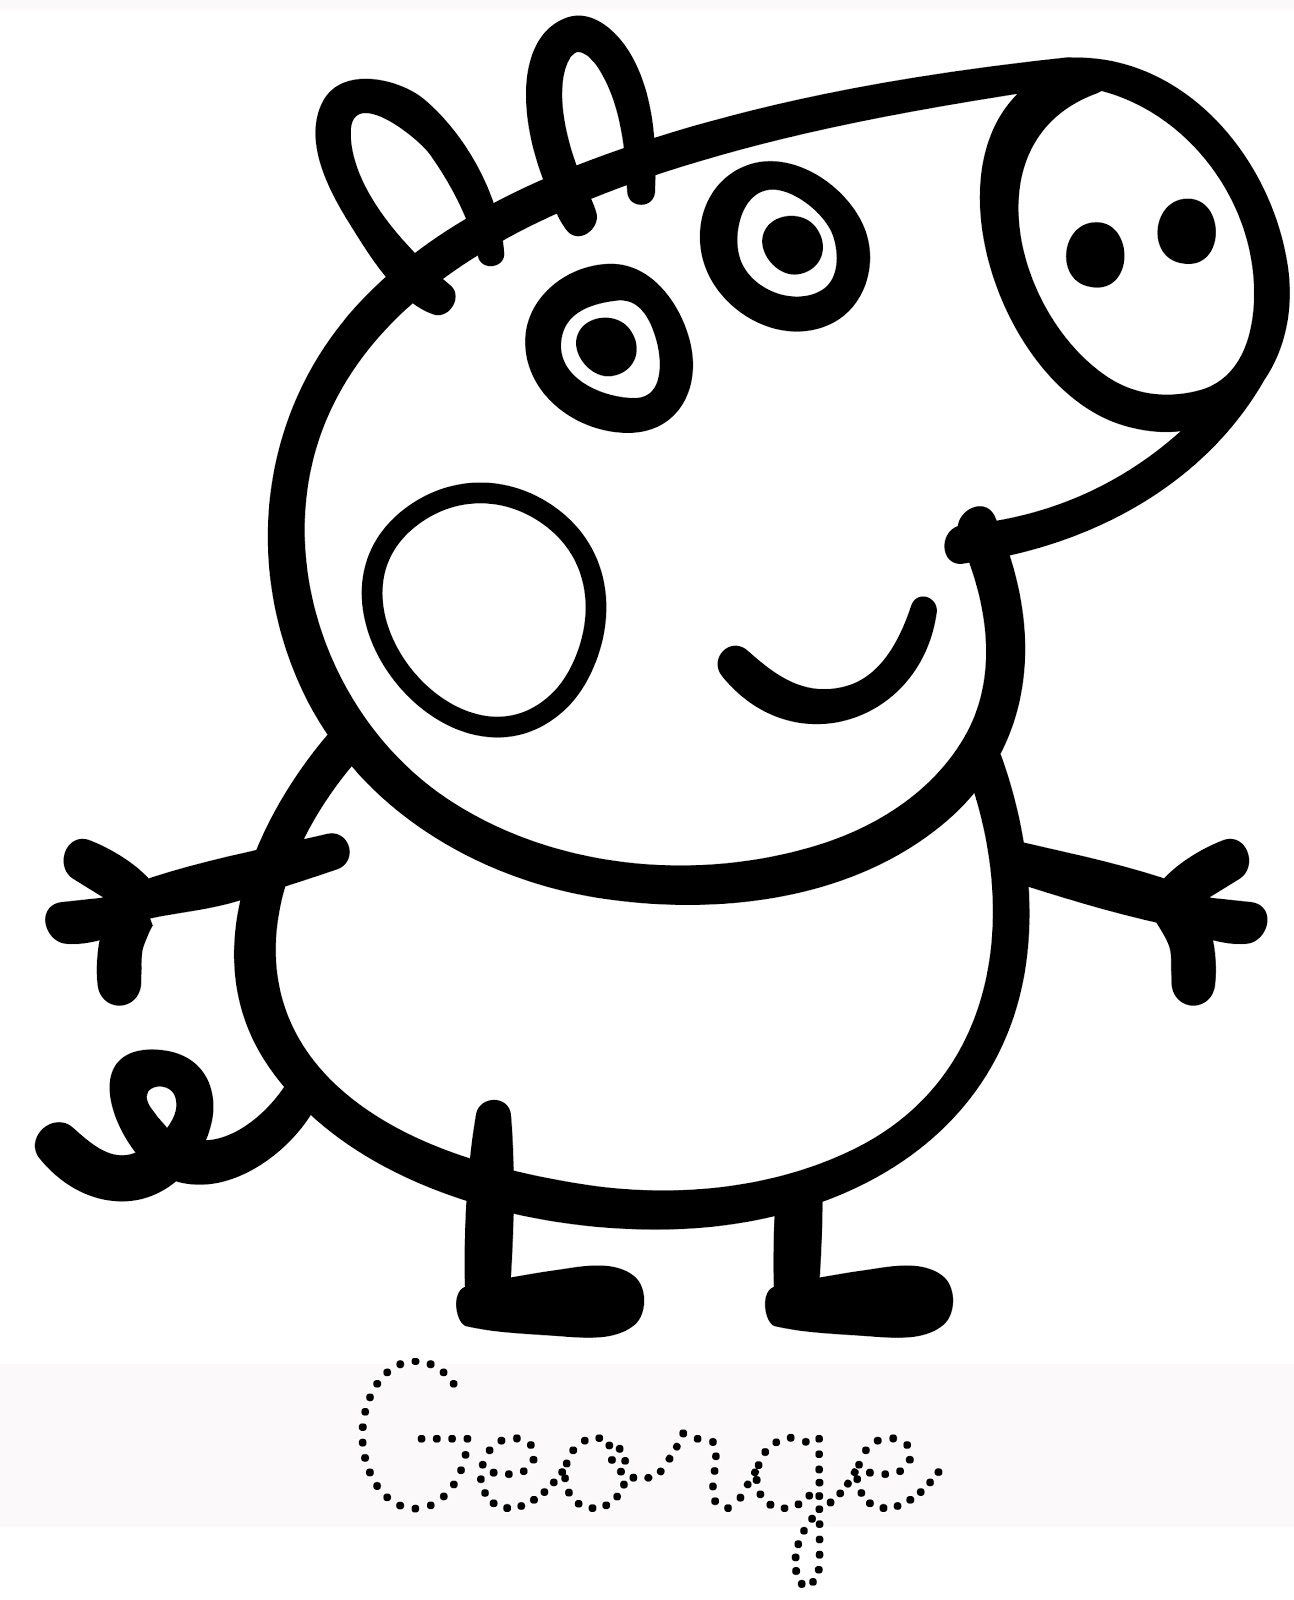 Coloring Pages : Peppa Pig Cartoons Printable Coloring intérieur Peppa Pig A Colorier